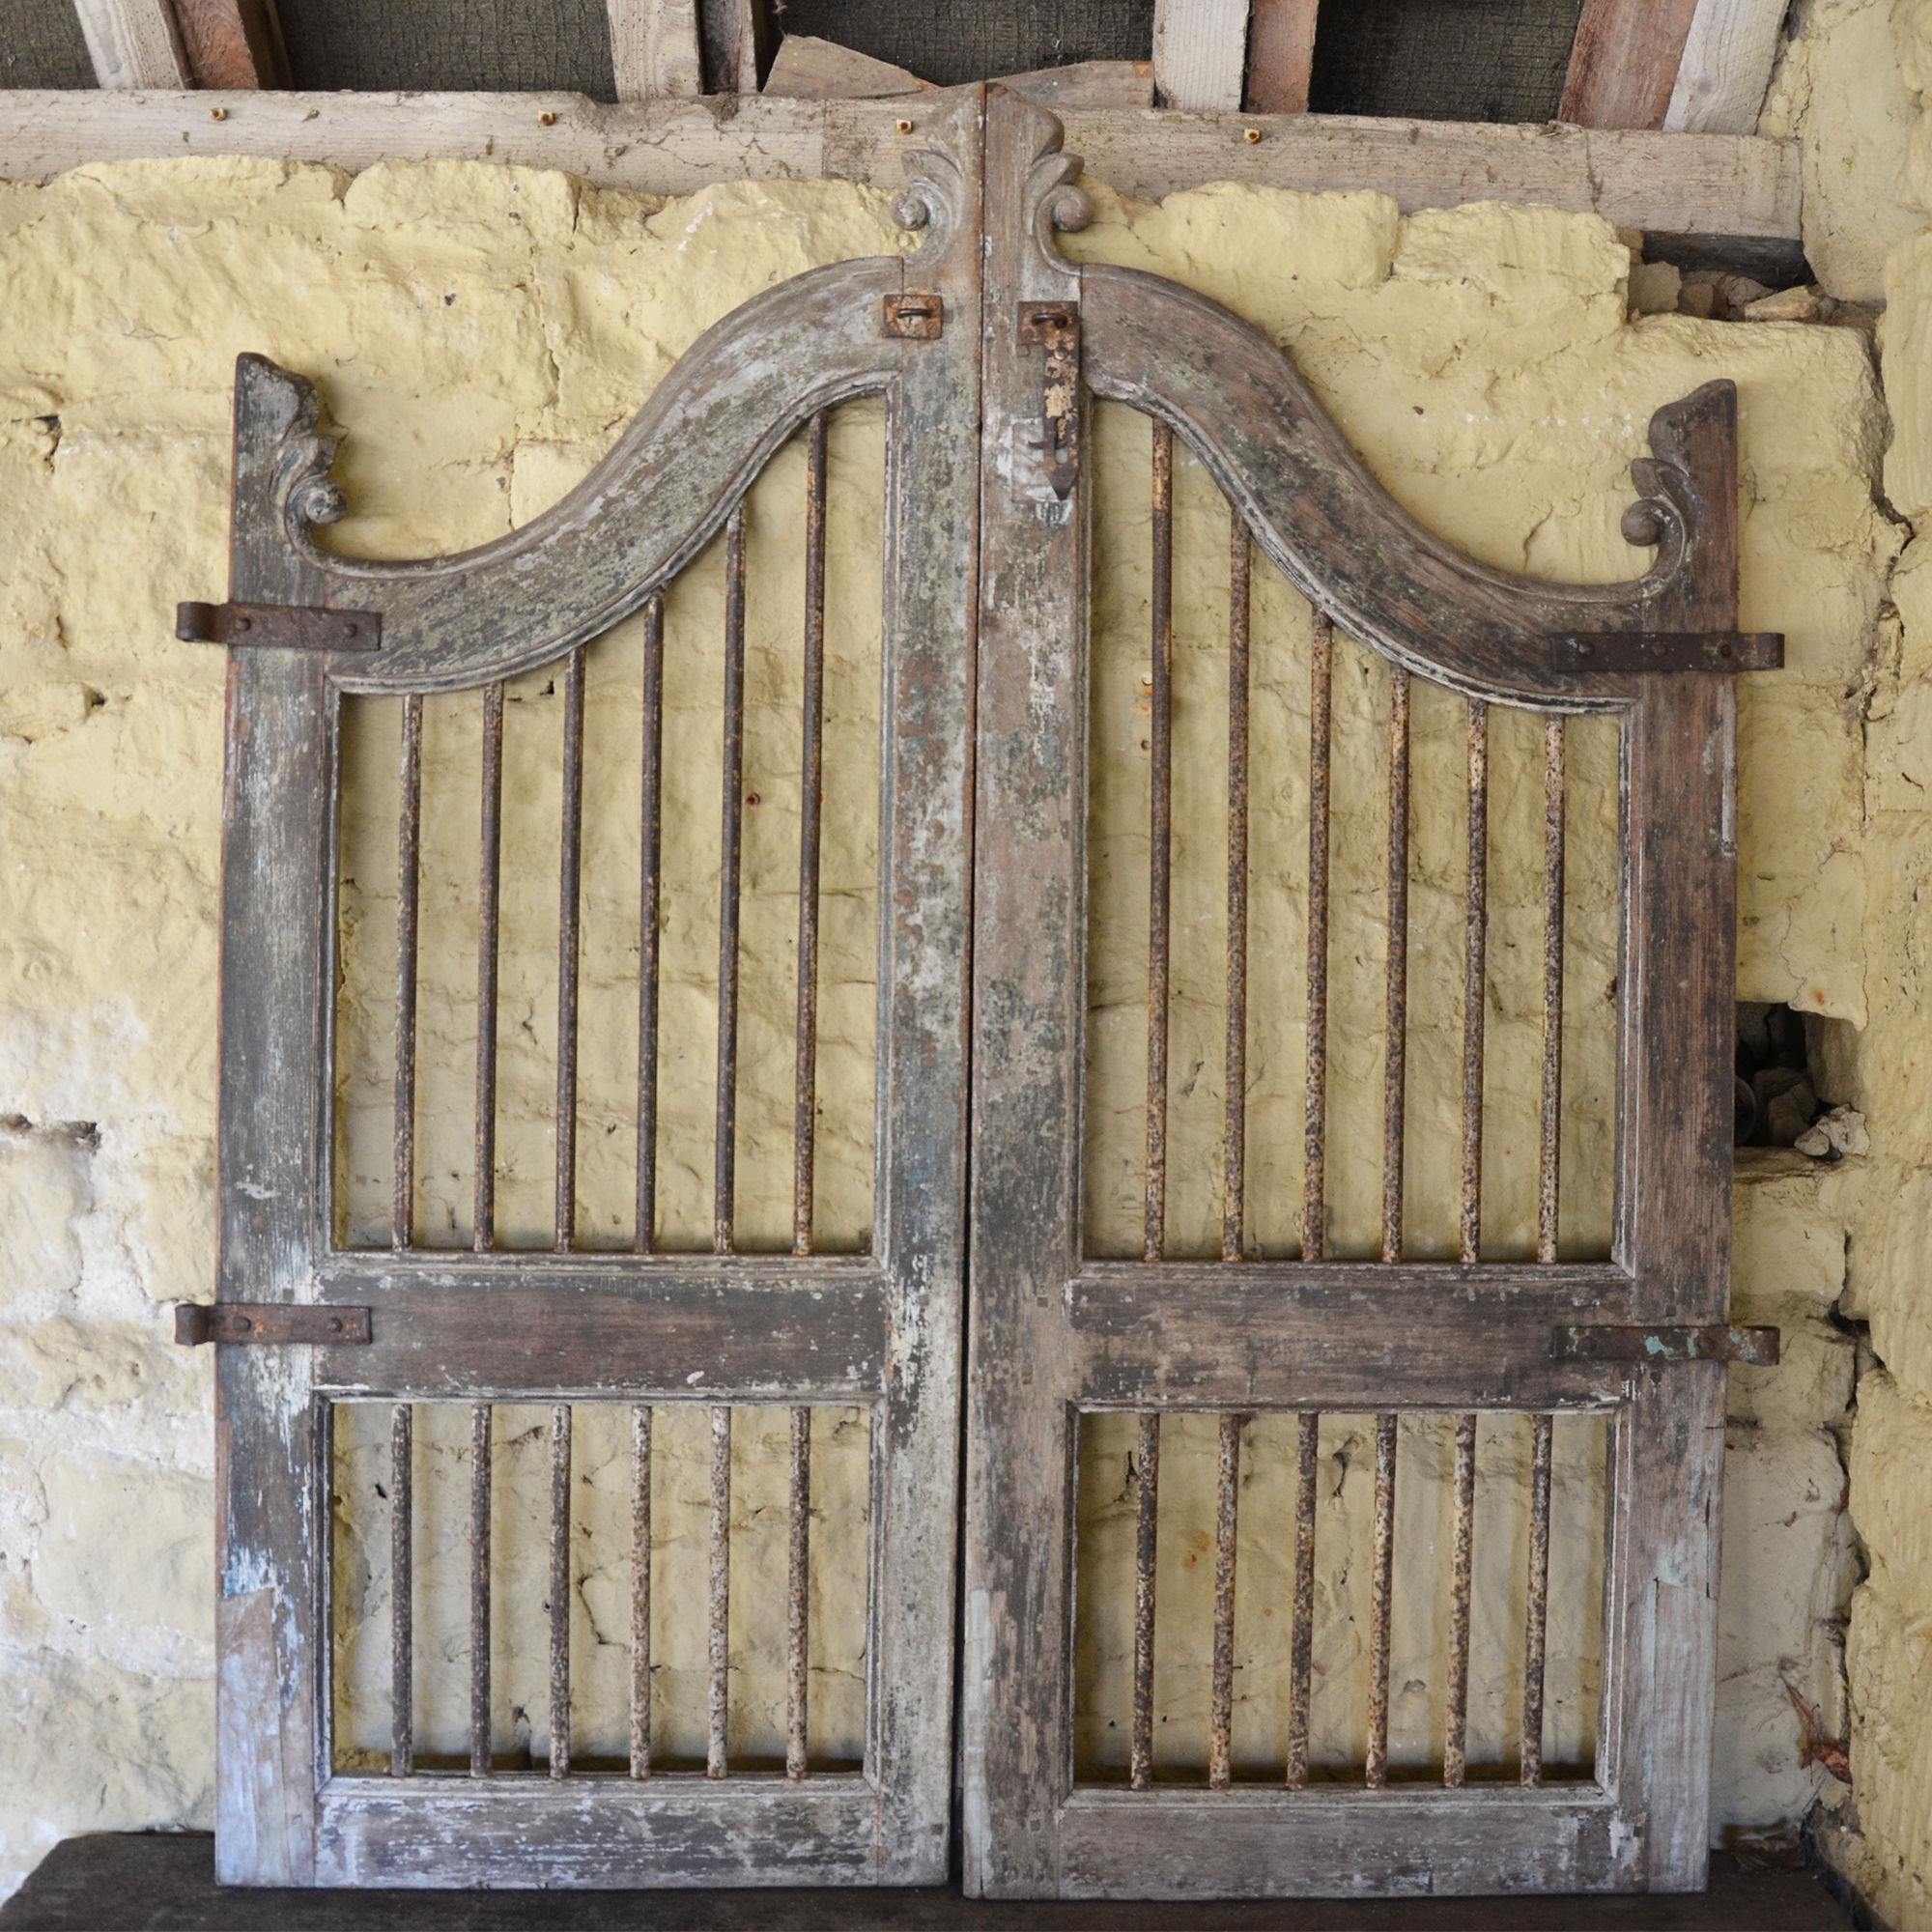 A pair of vintage wooden garden gates